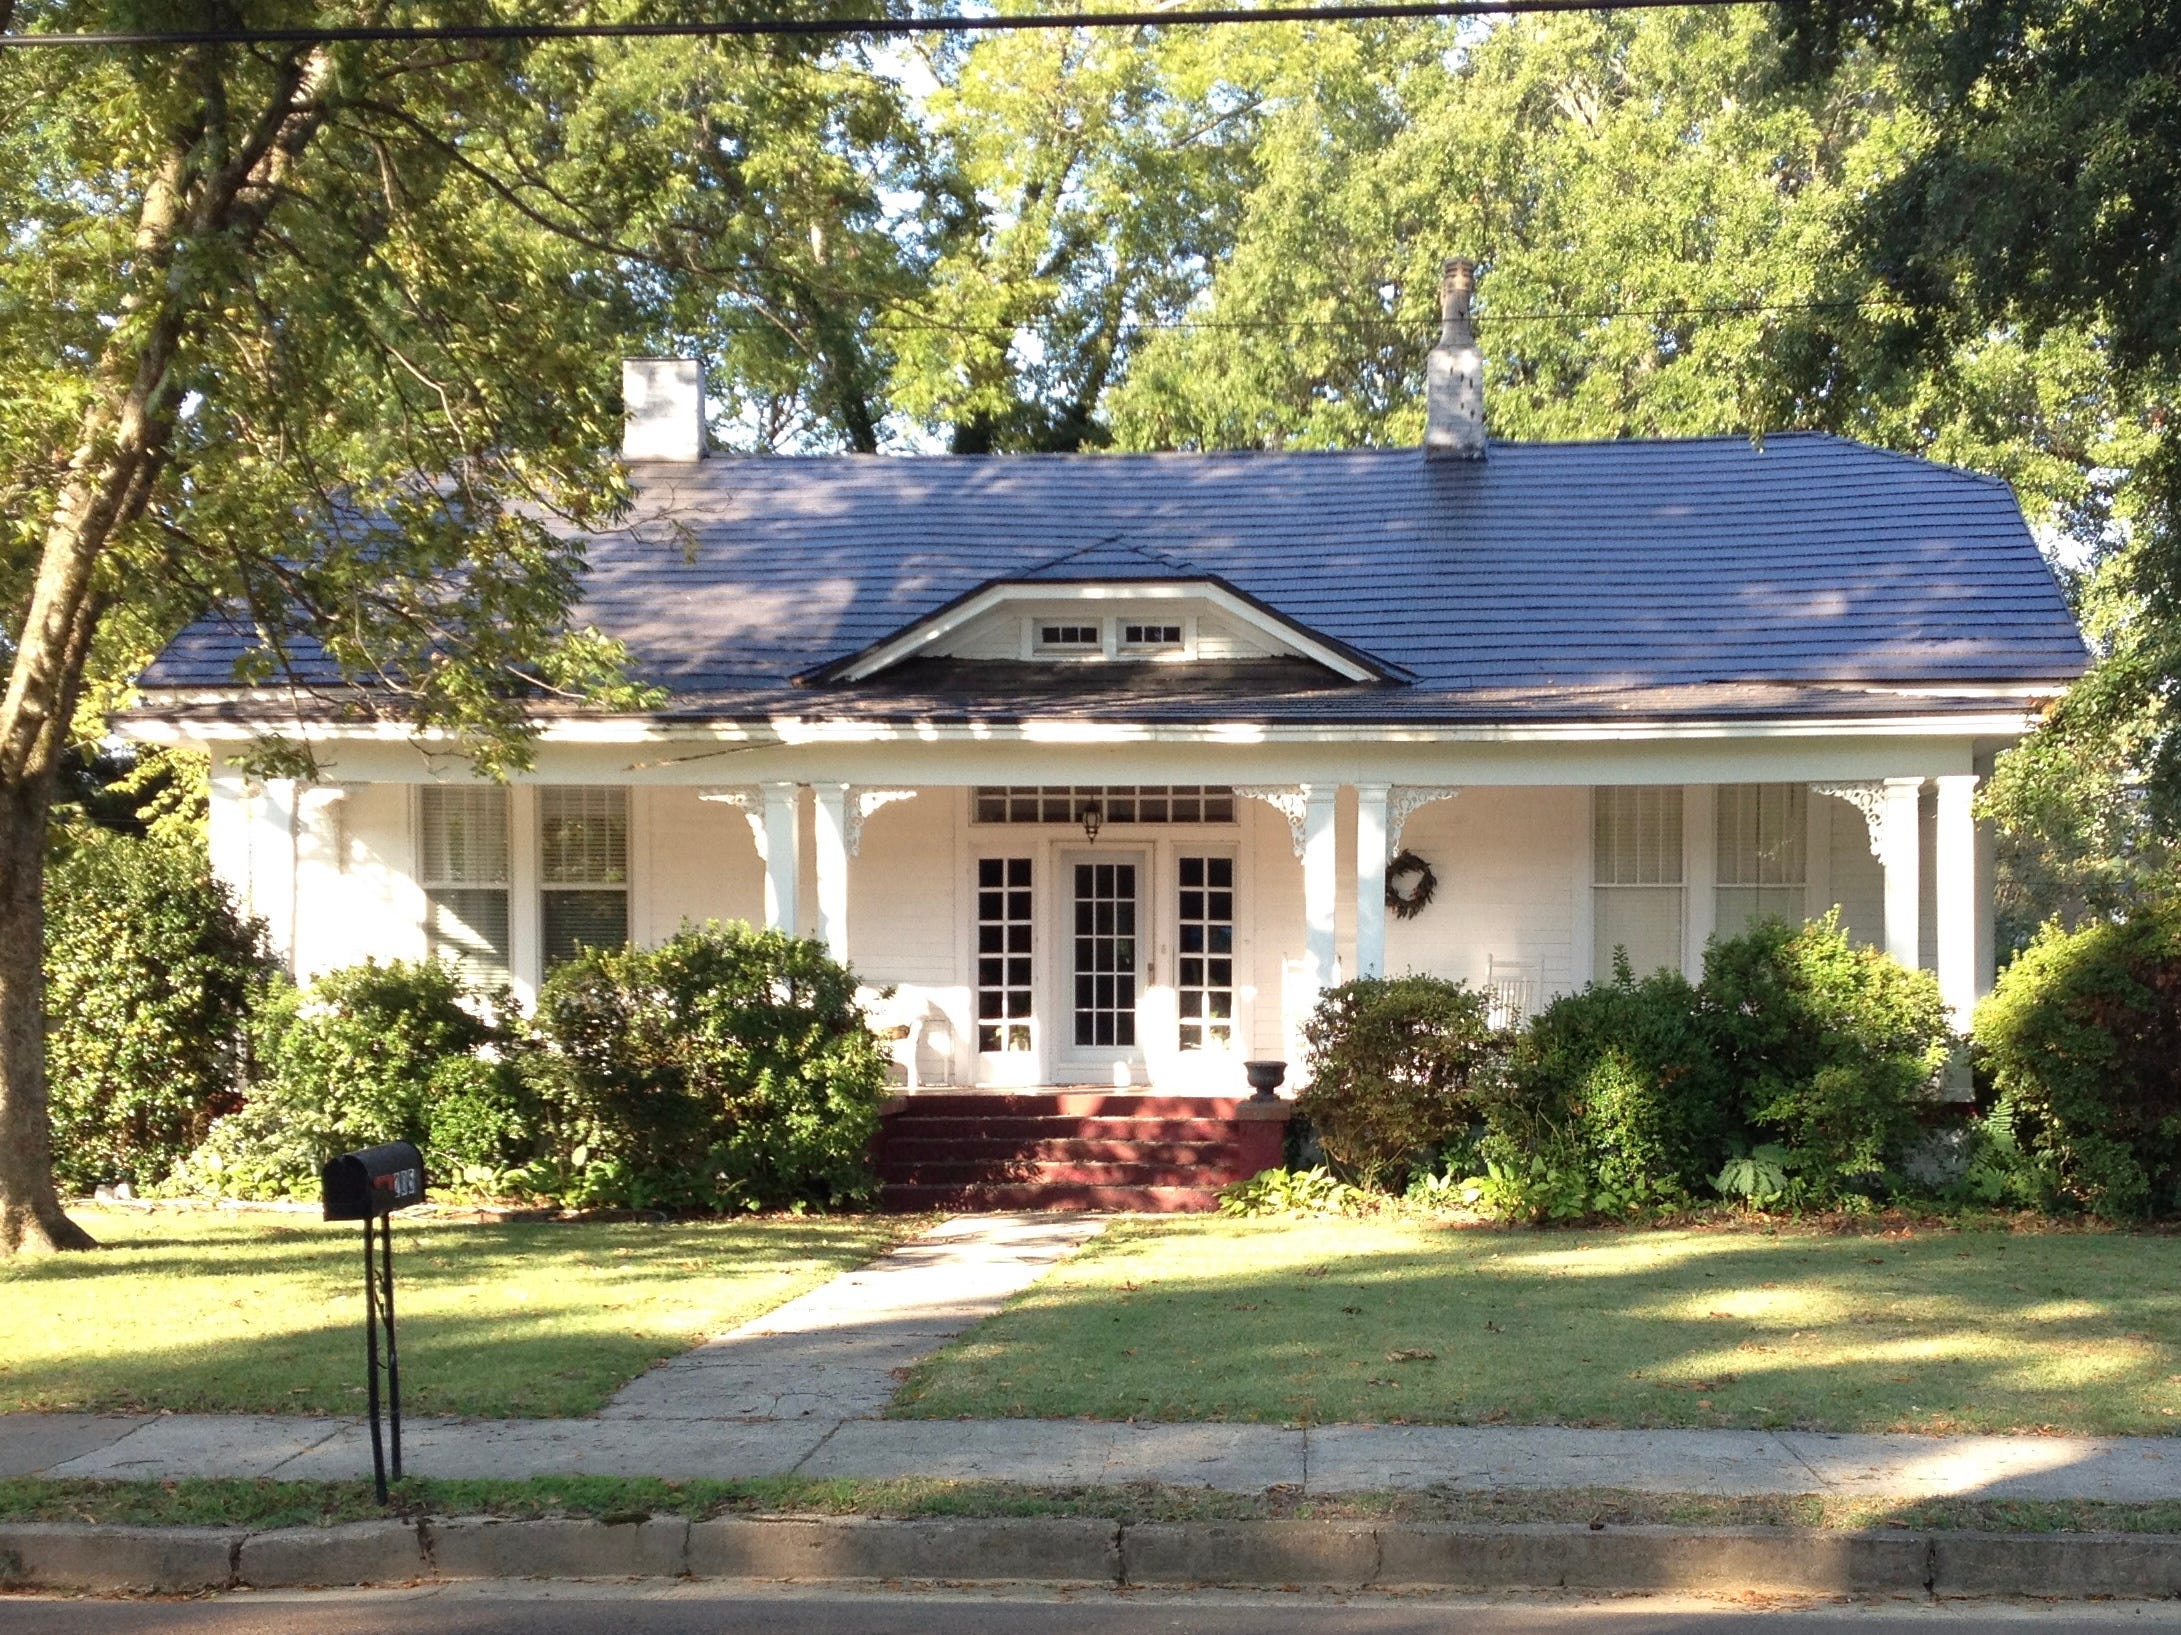 Ms. Cheap's grandparents' house in Mississippi had a wonderful front porch. Now Ms. Cheap is having a contest looking for great ideas for spiffying up your porch or patio or even a balcony.  Send her your best ideas.